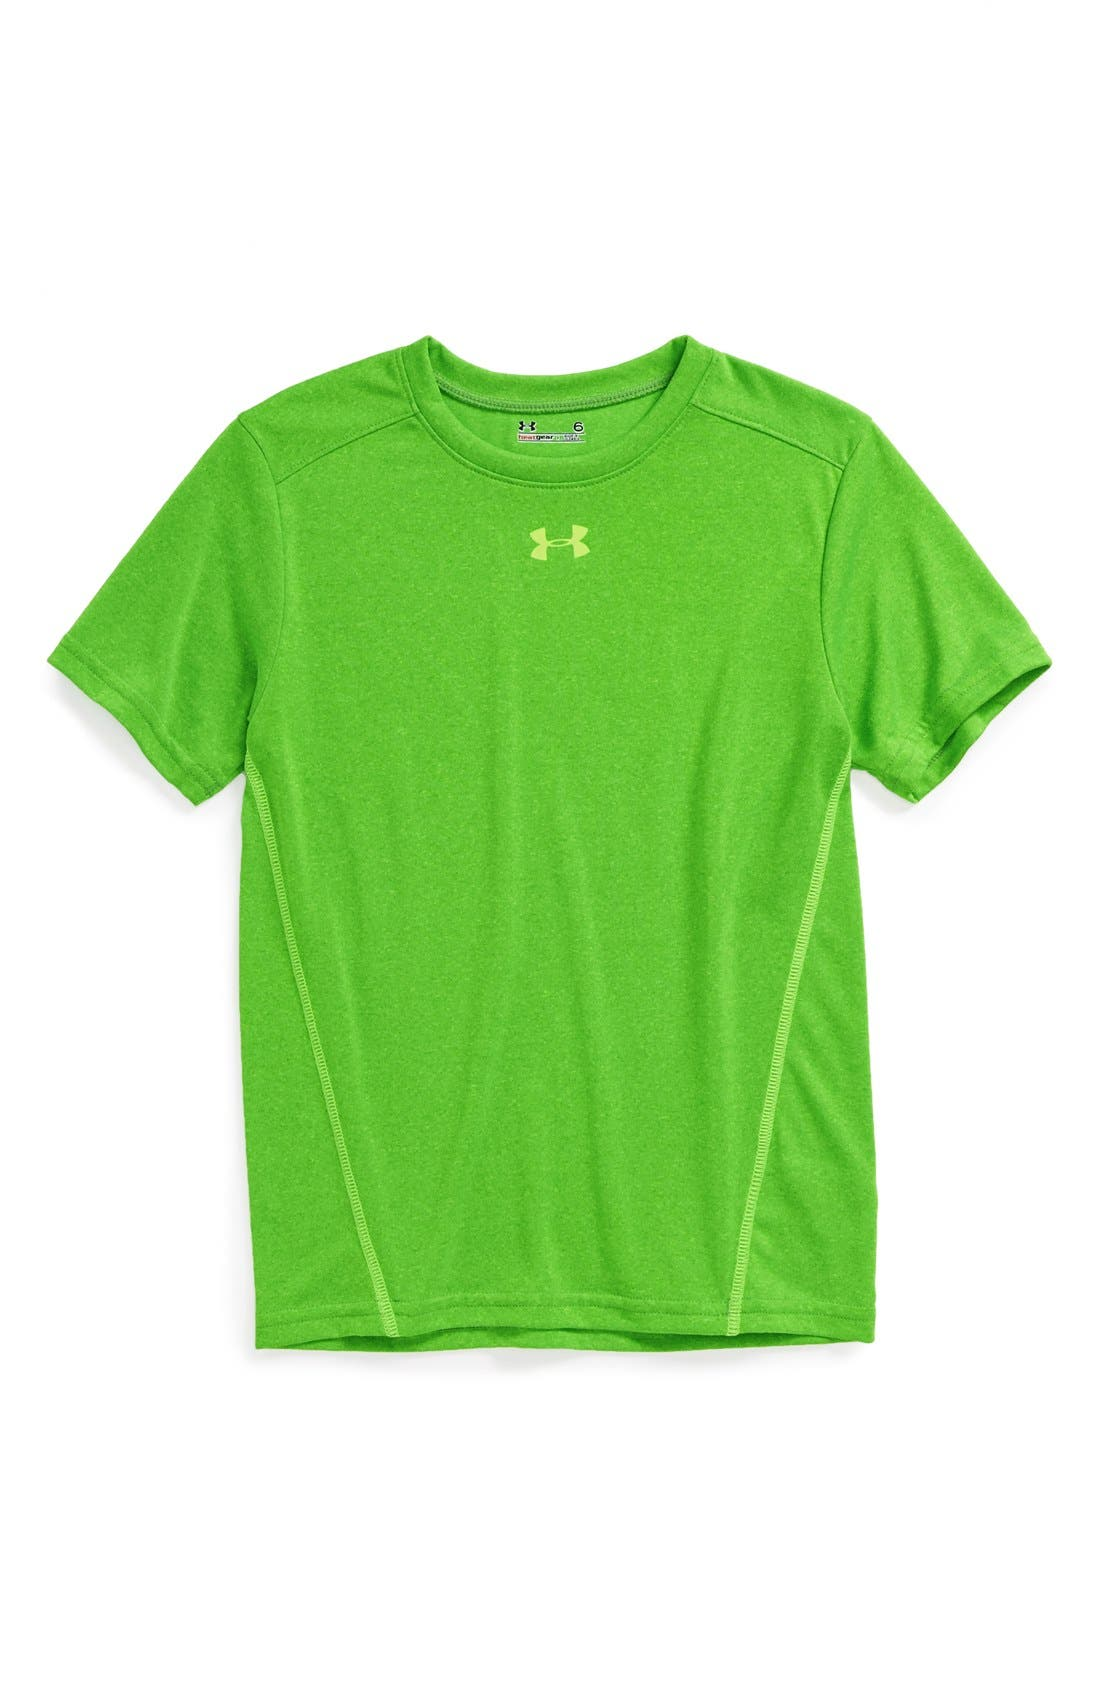 Alternate Image 1 Selected - Under Armour 'Comingled' HeatGear® T-Shirt (Little Boys)